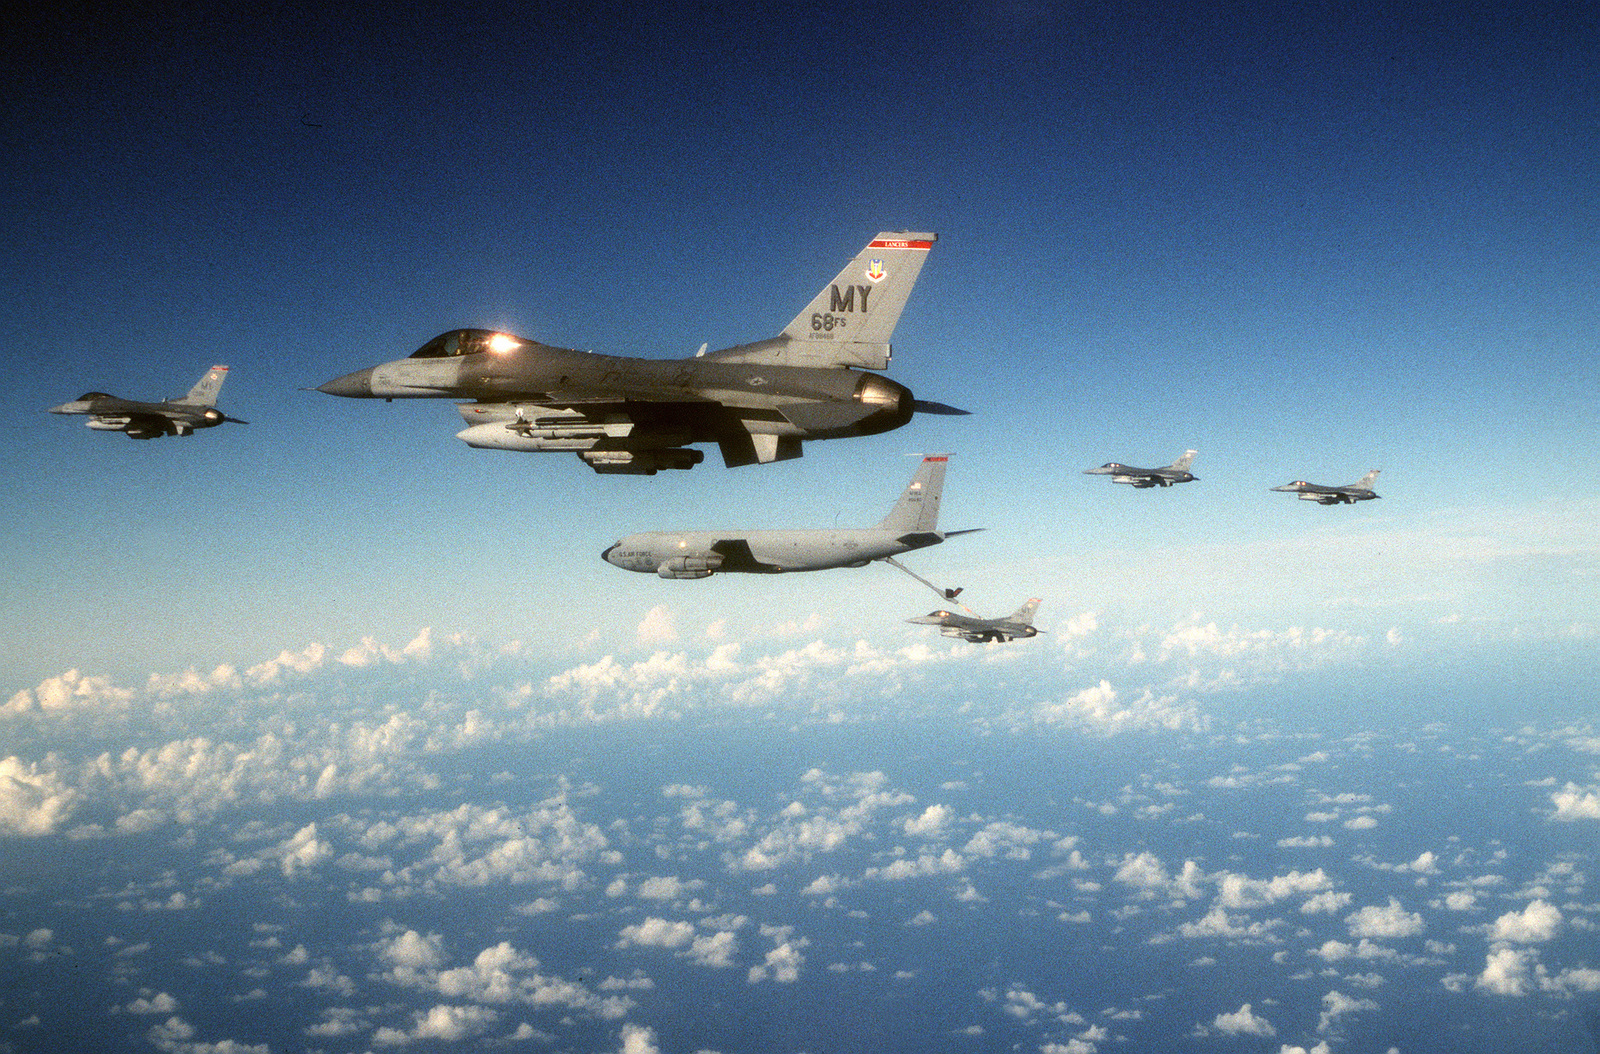 Five F-16s from the 347th Composite Wing, 69th Fighter